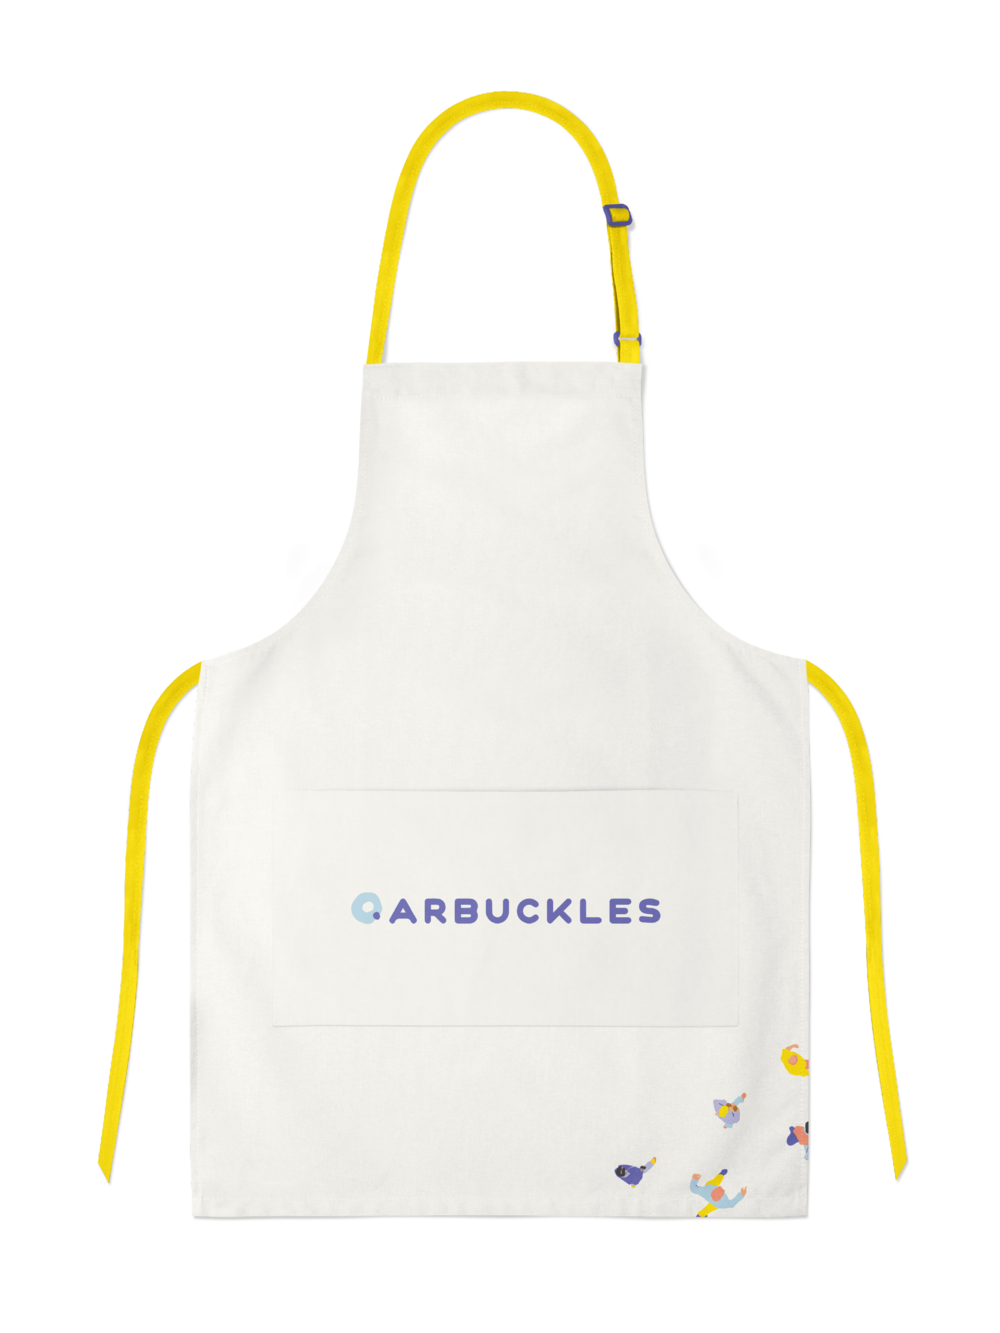 Arbuckles_CaseStudy-15-min.png